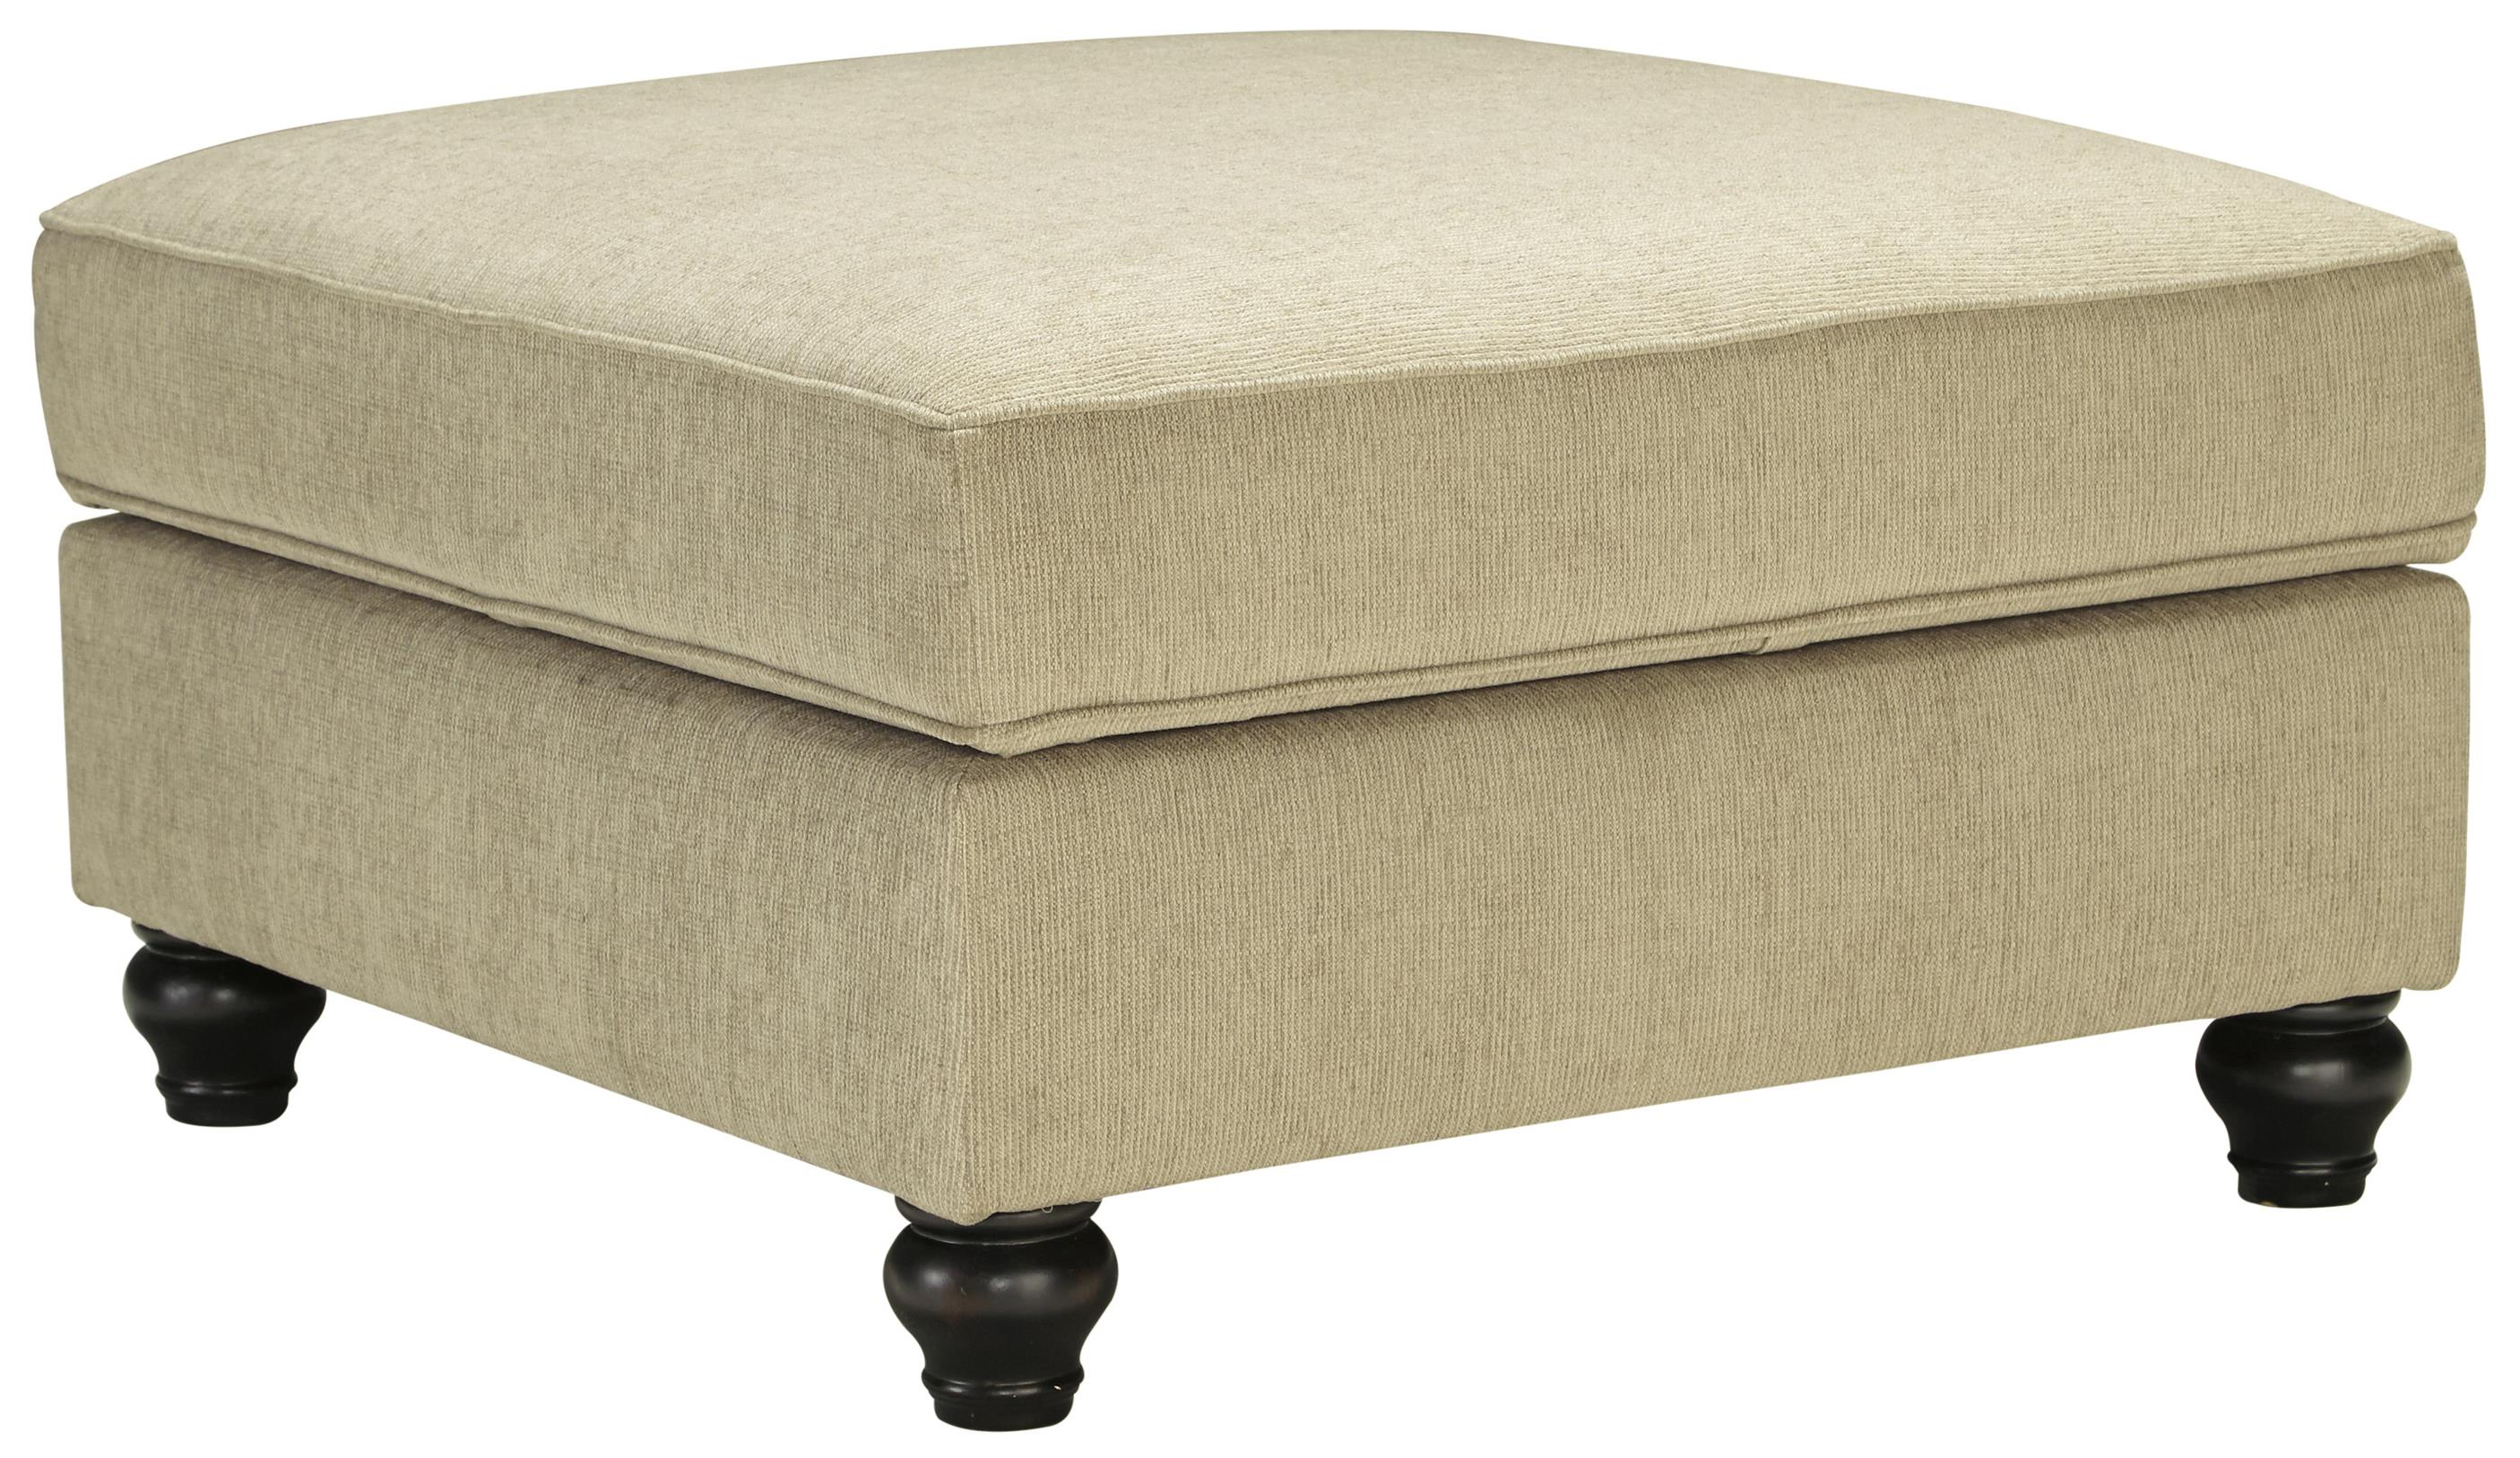 Benchcraft Kerridon Ottoman With Storage - Item Number: 2630011